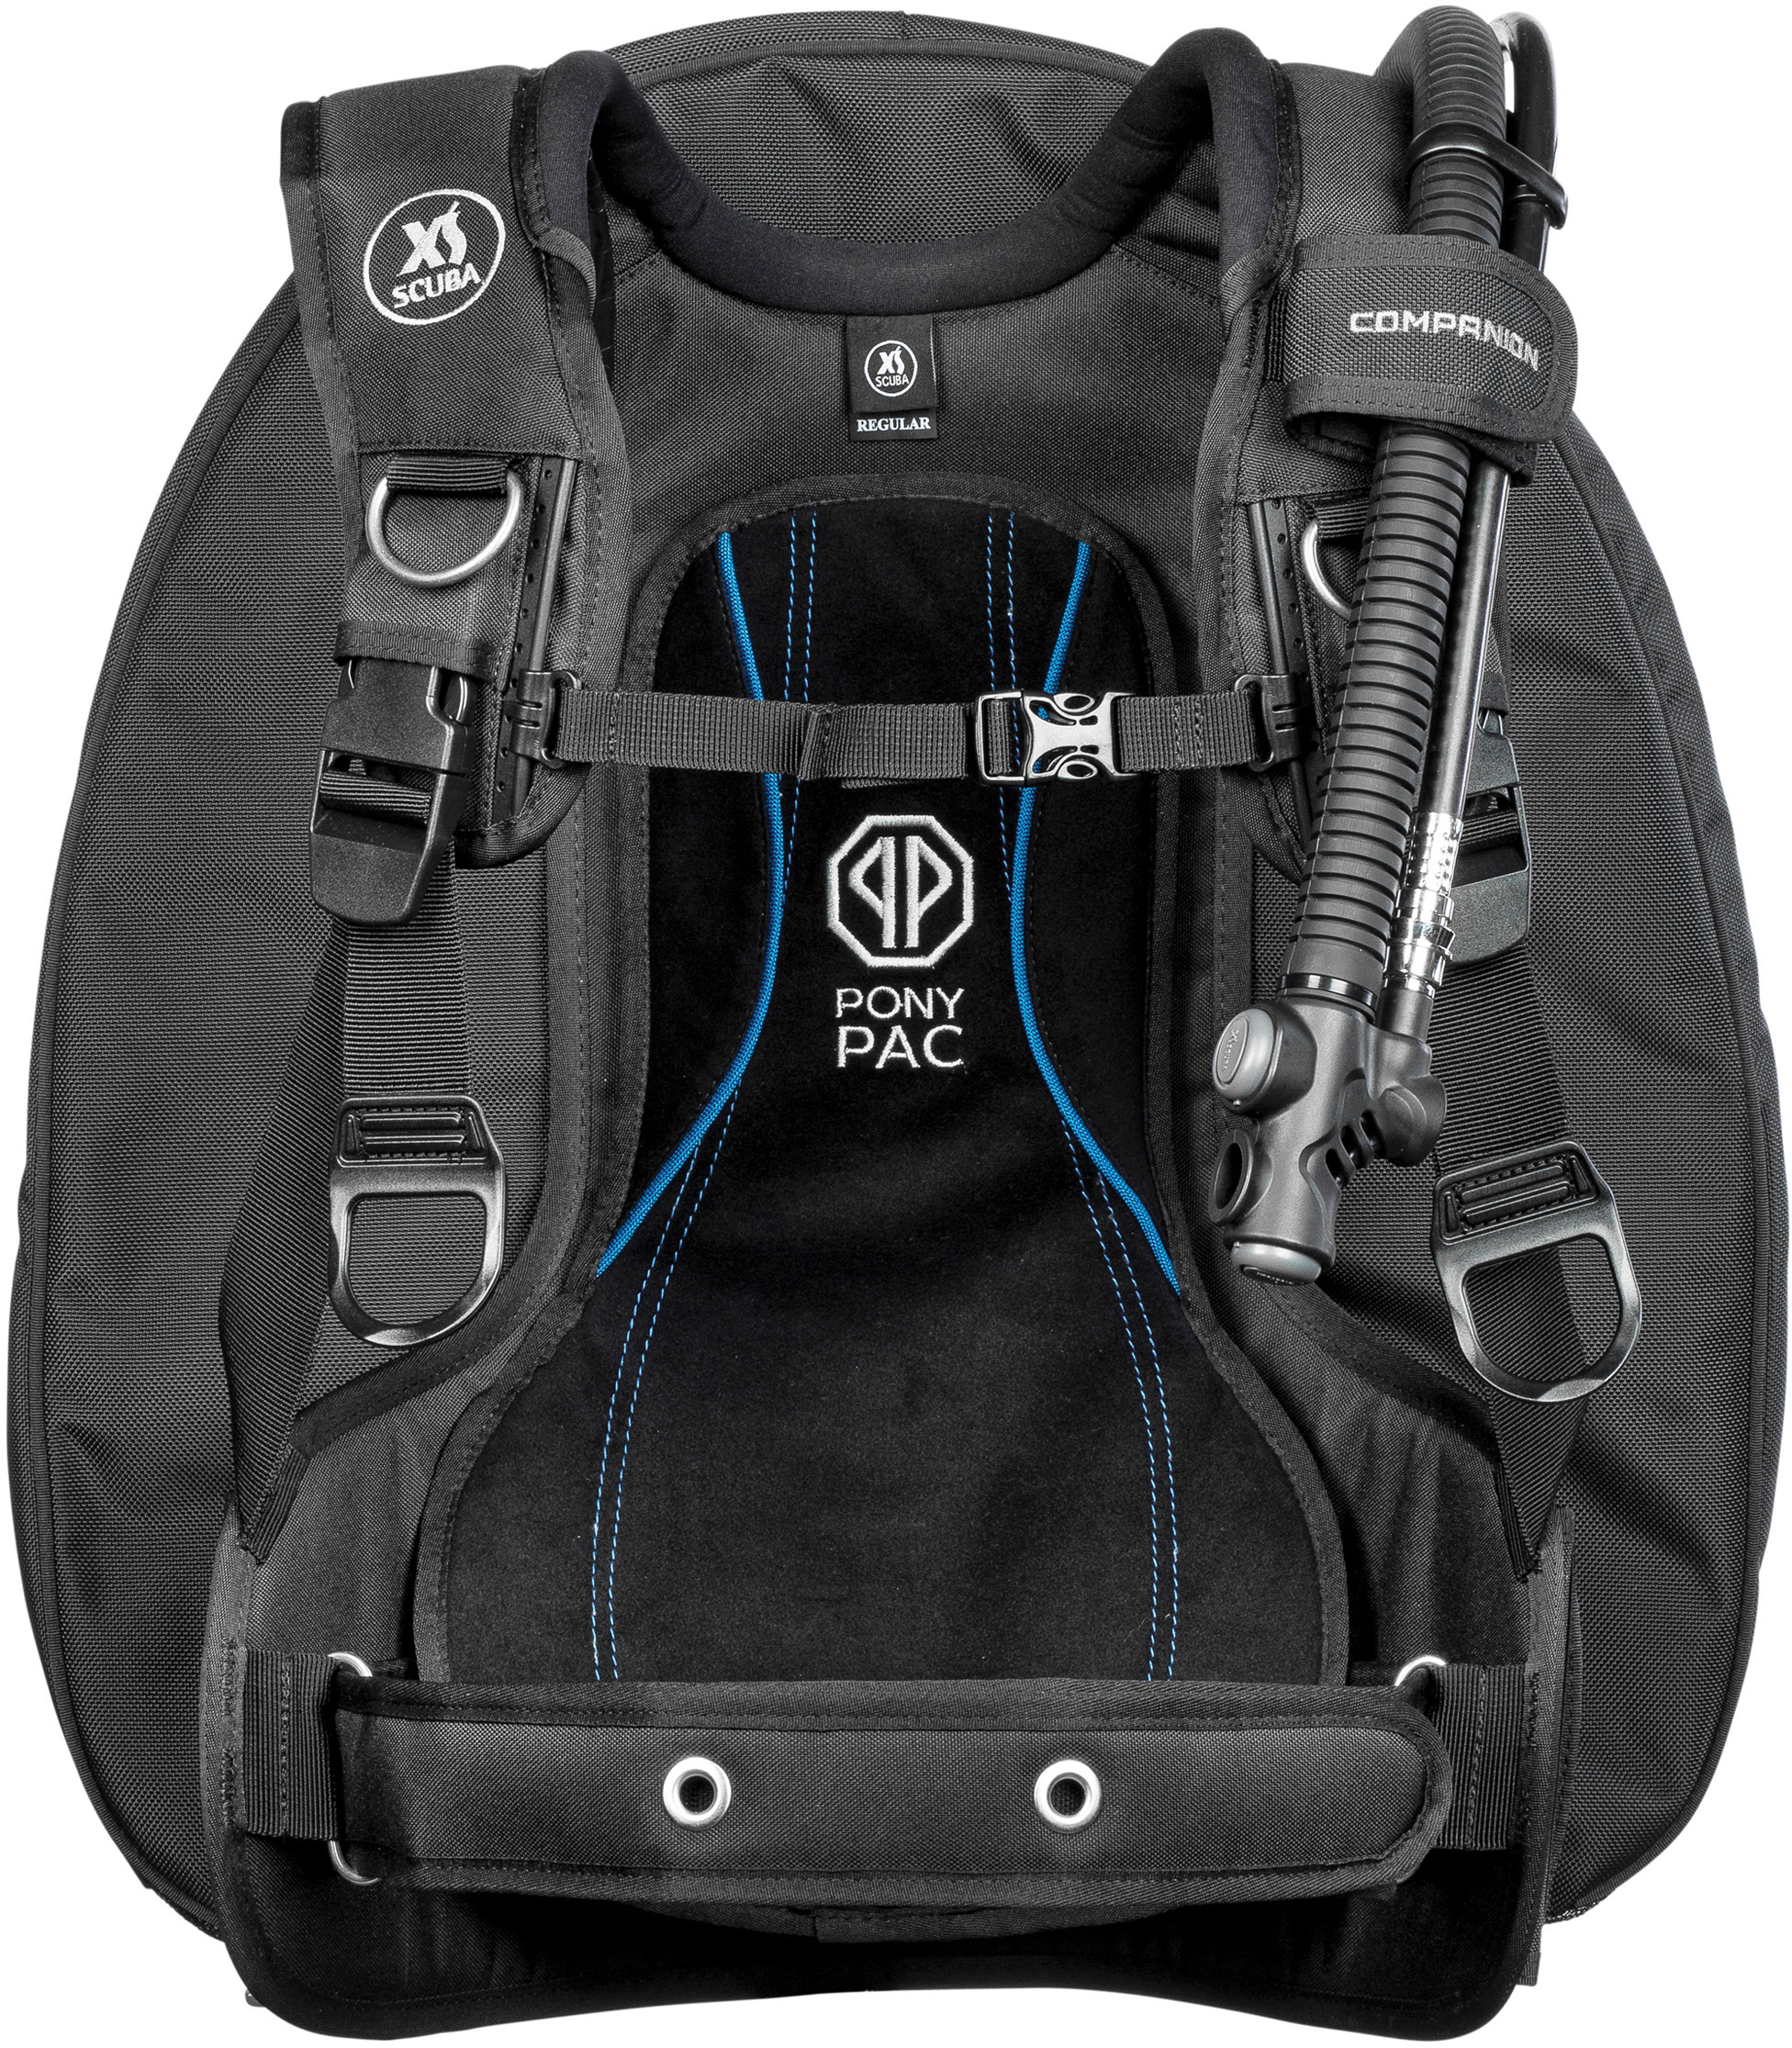 XS Scuba Companion Travel BCD